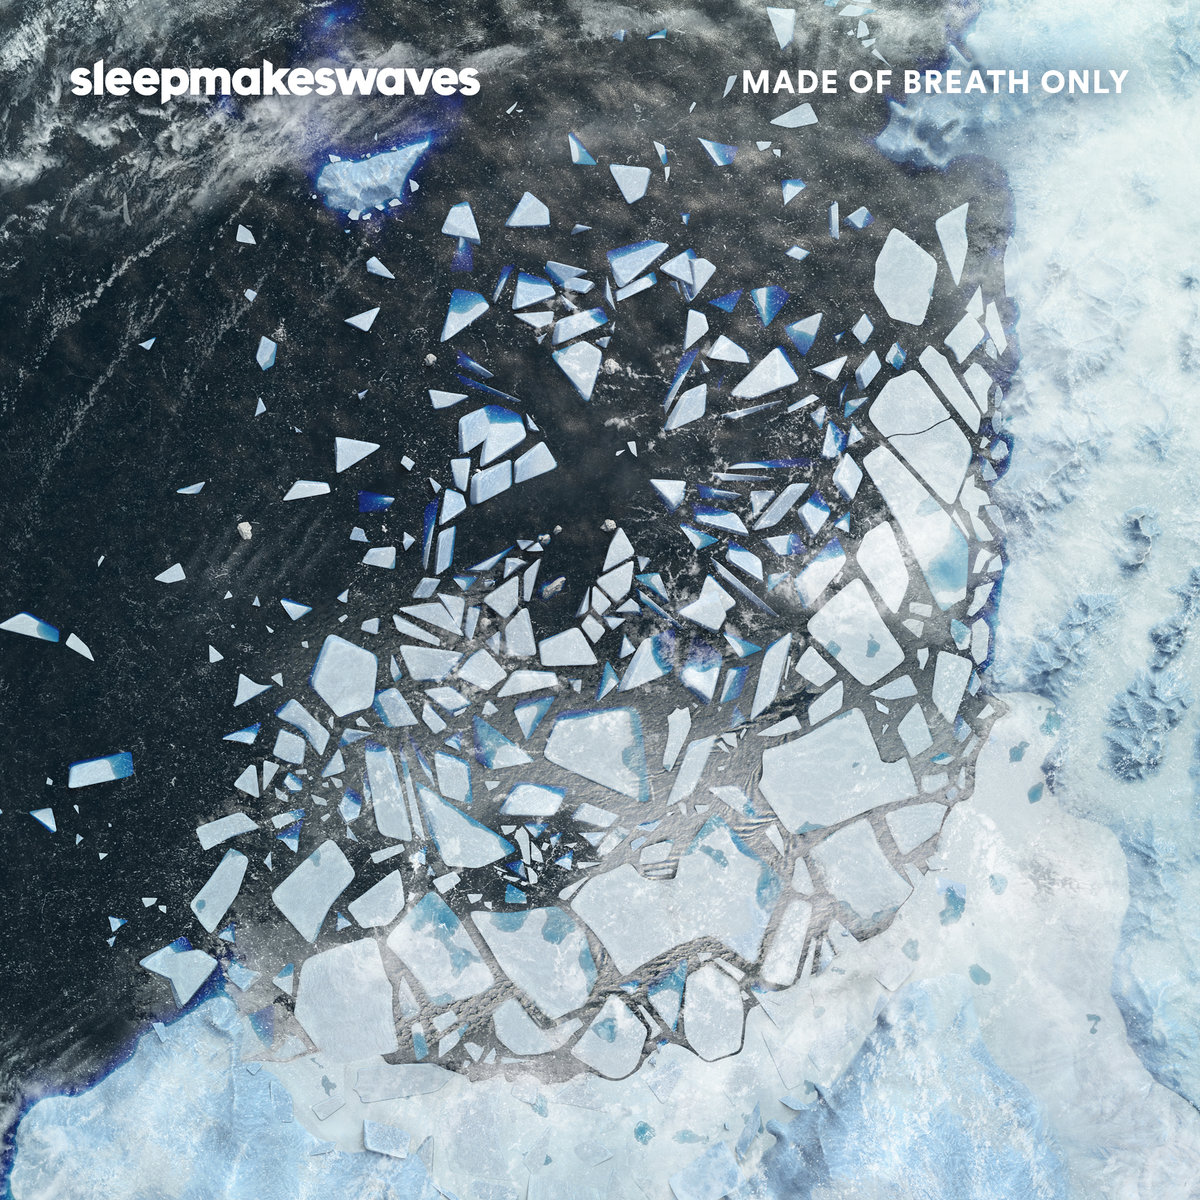 sleepmakeswaves: Made of Breath Only